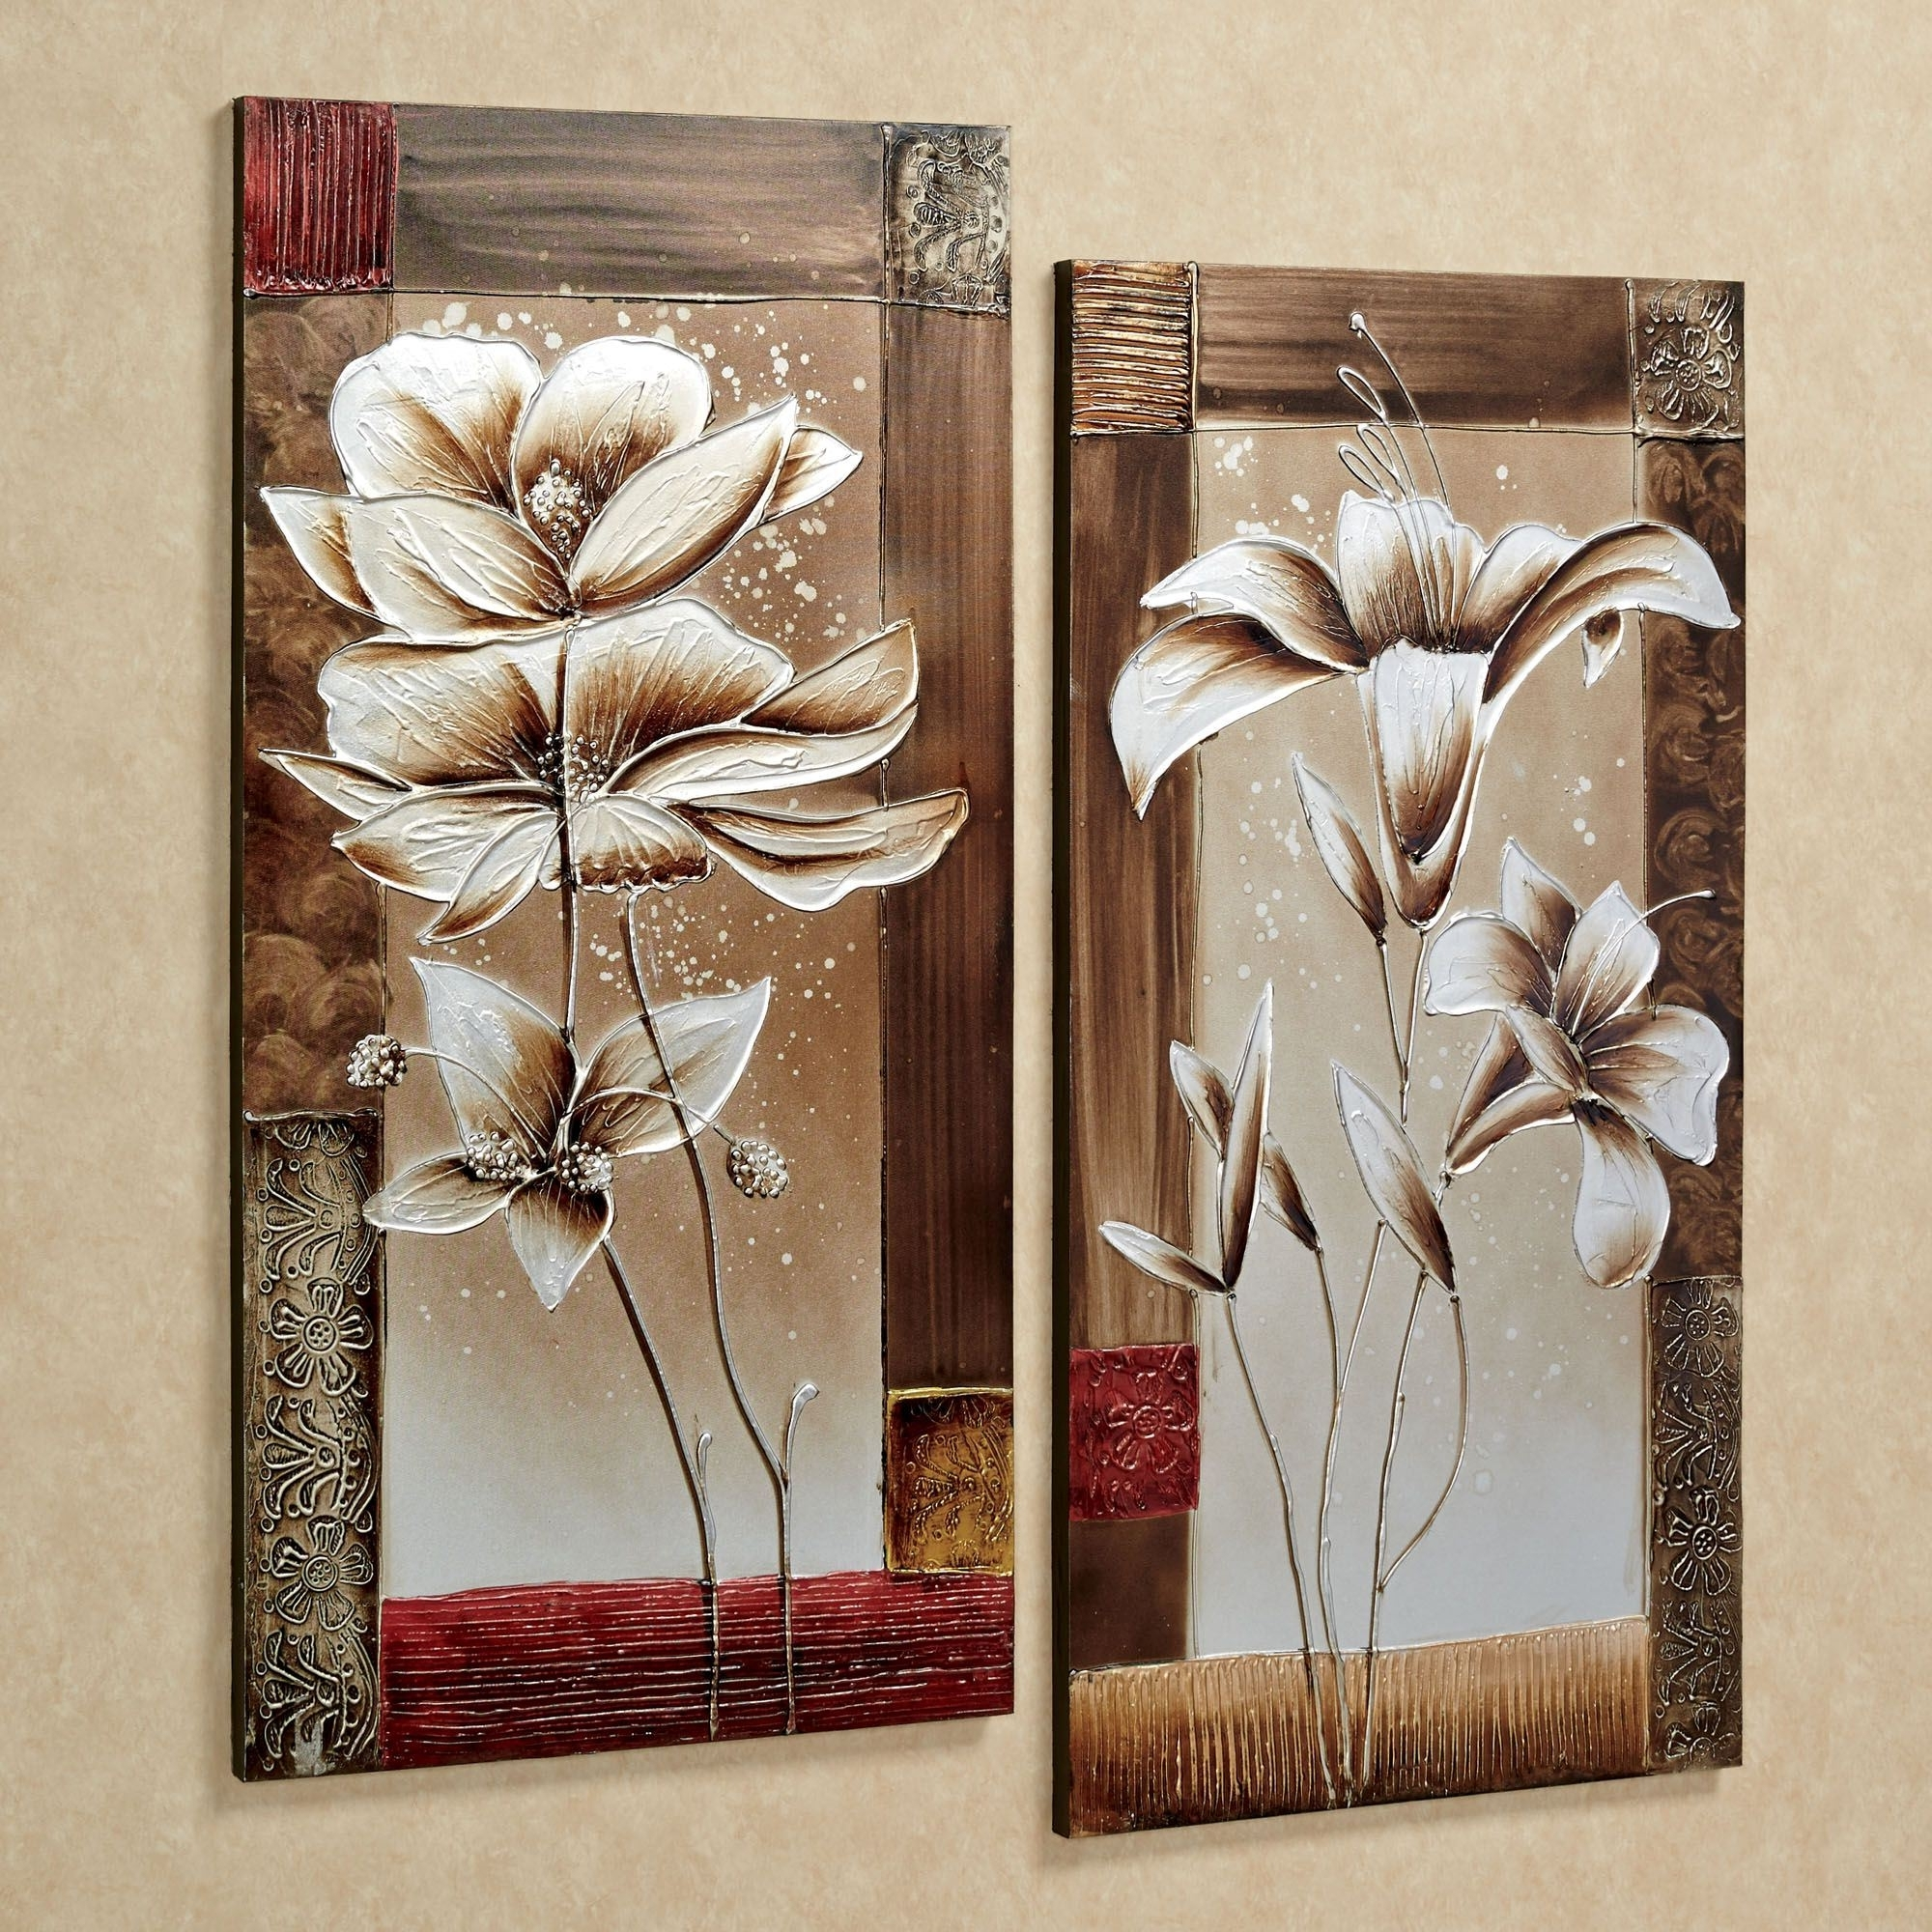 Most Recent Petals Of Spring Floral Canvas Wall Art Set With Regard To Wall Art Canvas (View 9 of 15)